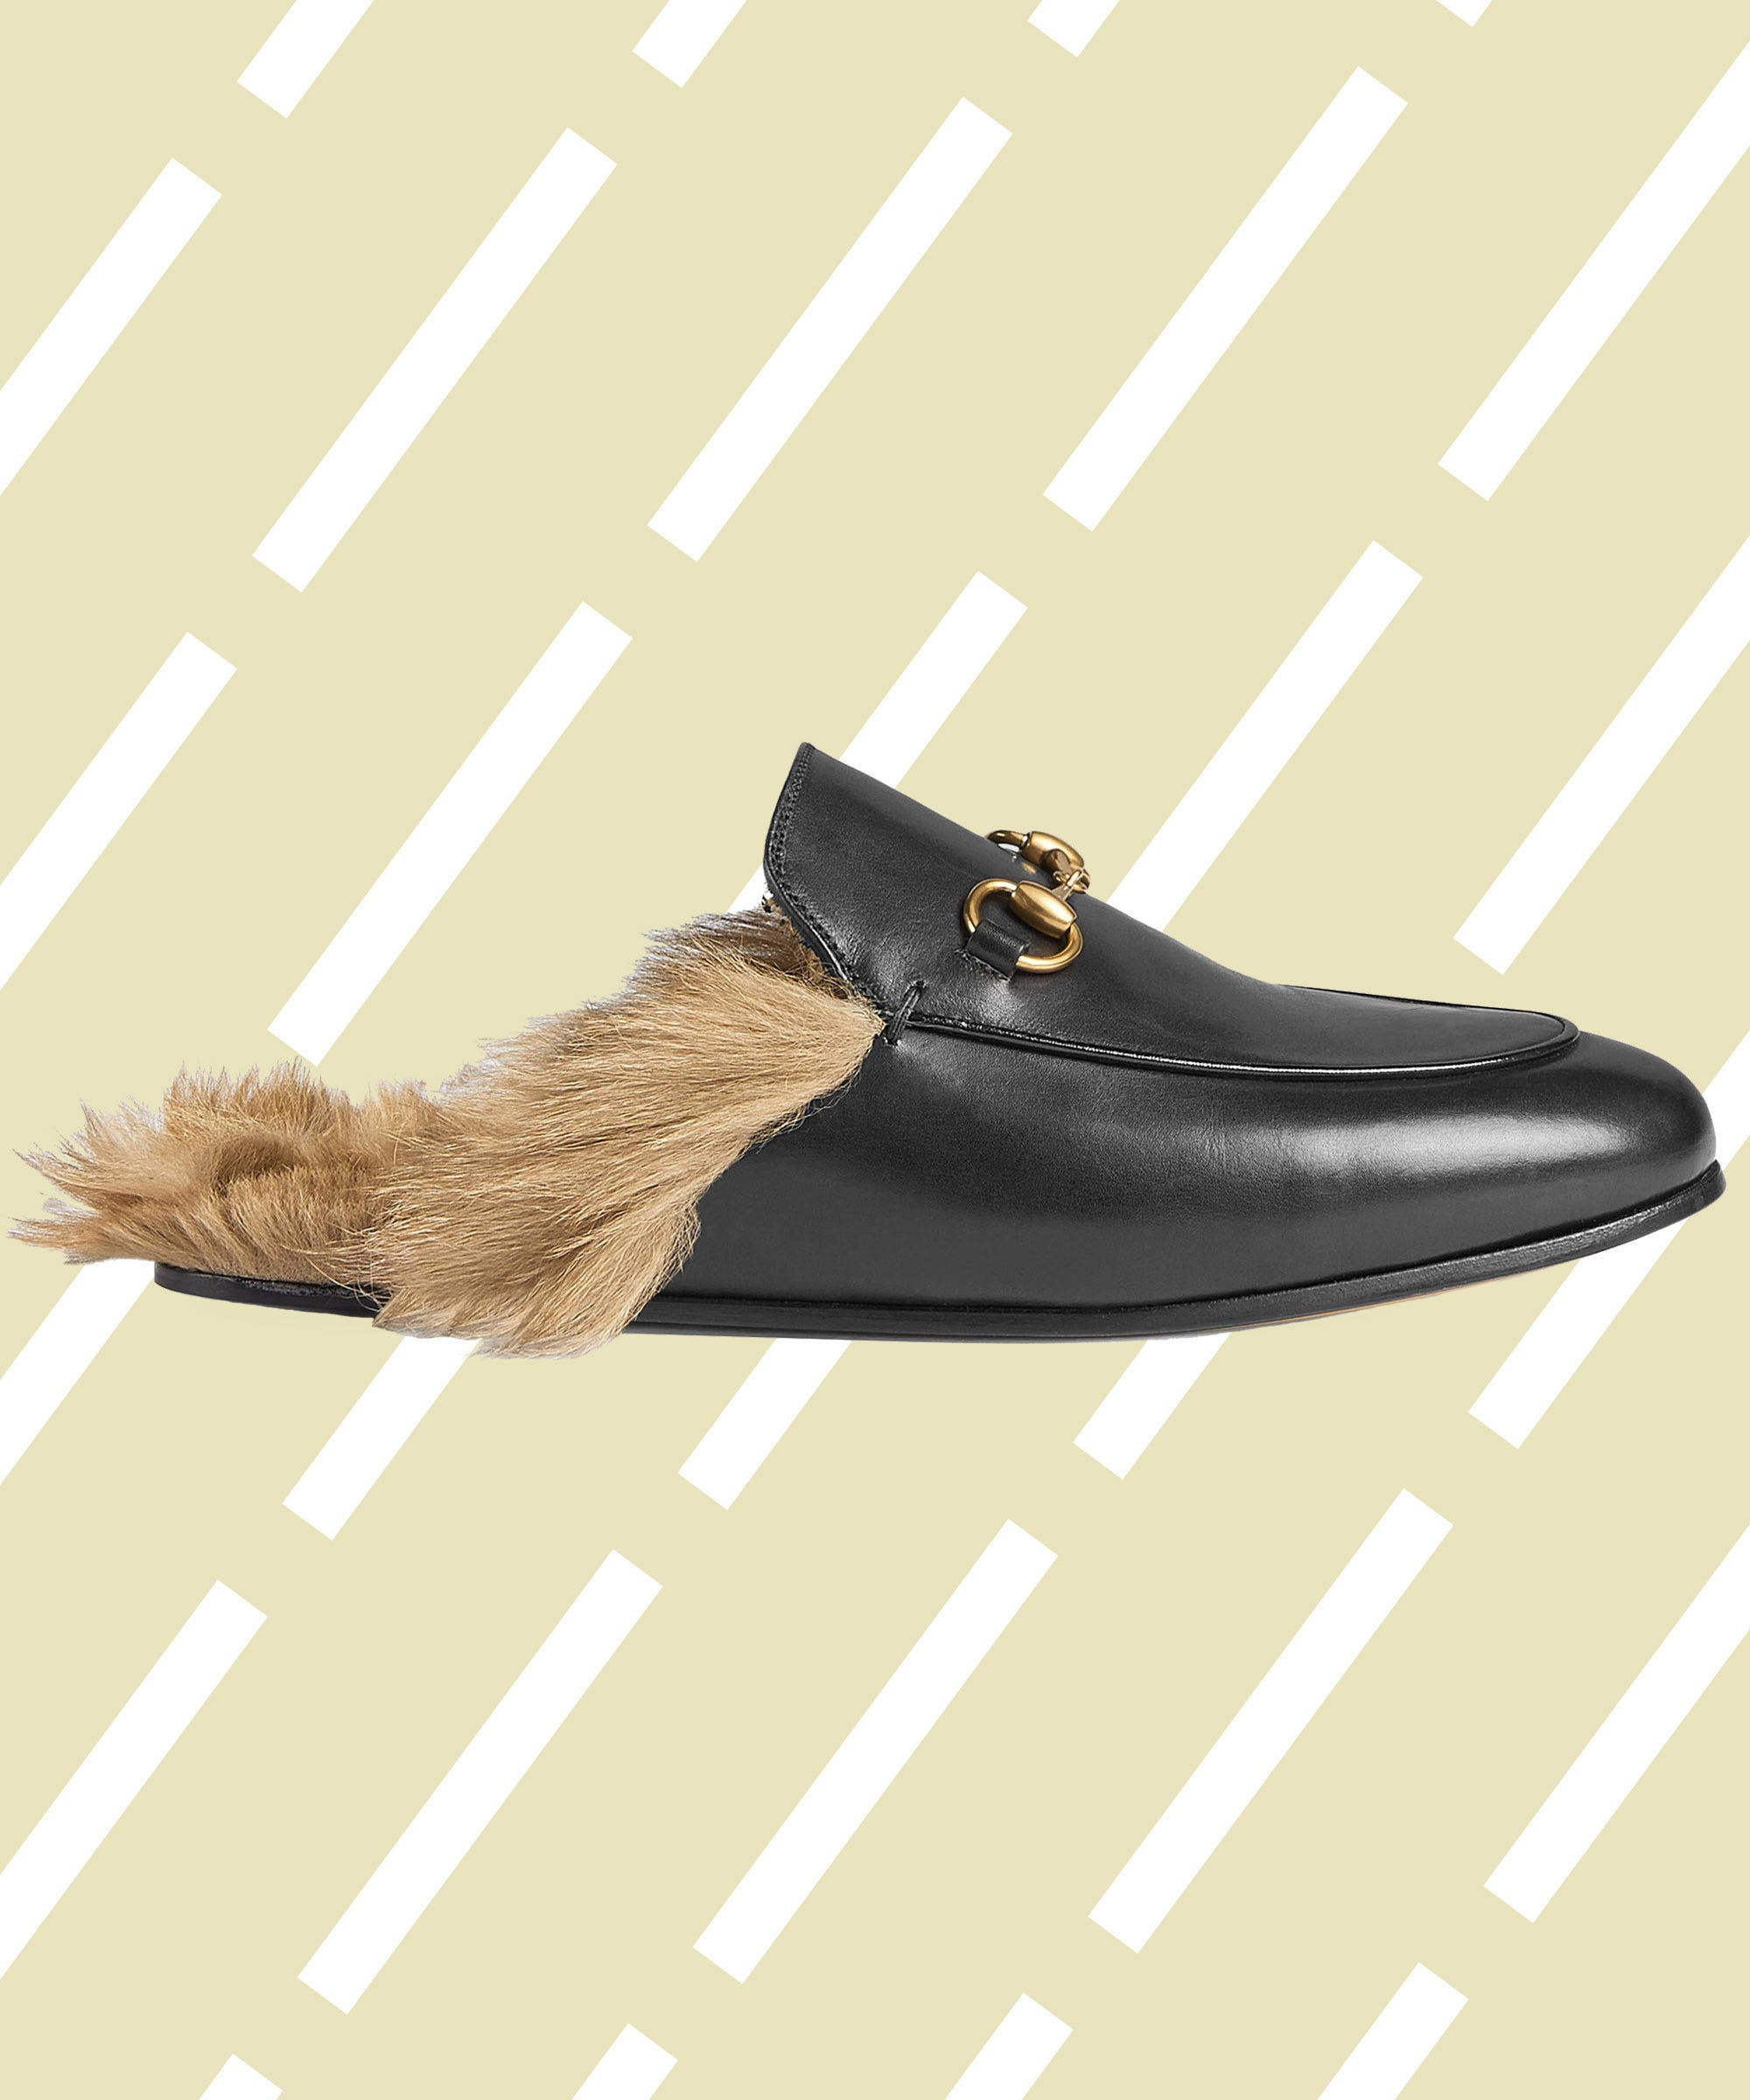 d4c1a1b34be Gucci Best Selling Sold Out Loafers